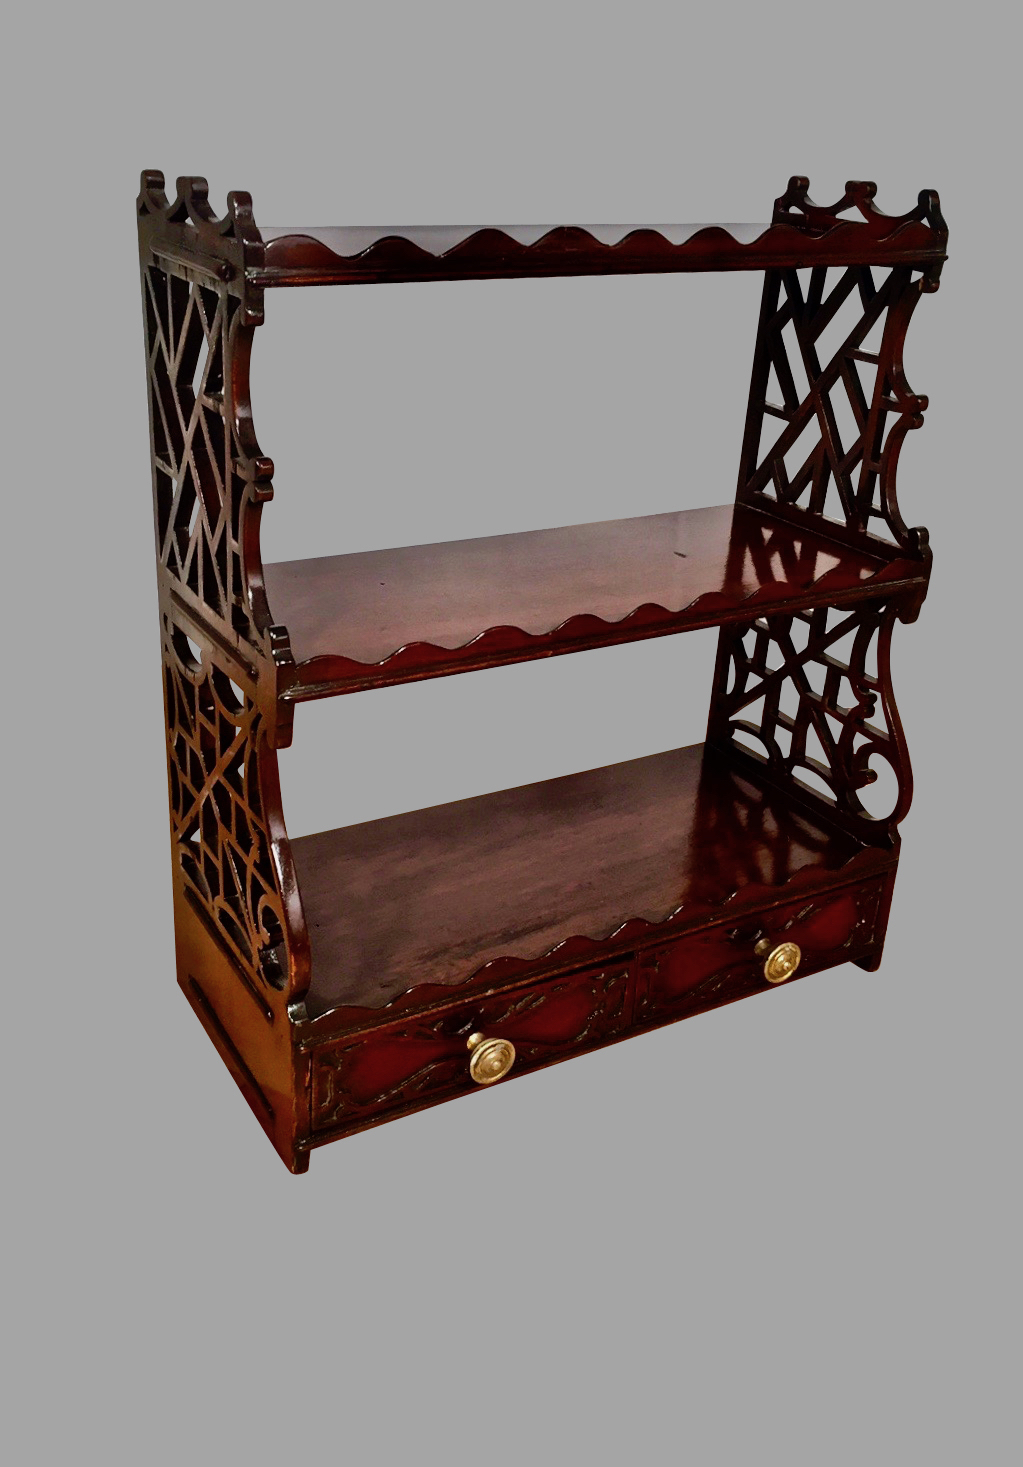 Chinese Chippendale Style Mahogany Hanging Shelf with 2 Drawers | DANIEL STEIN Antiques San Francisco CA